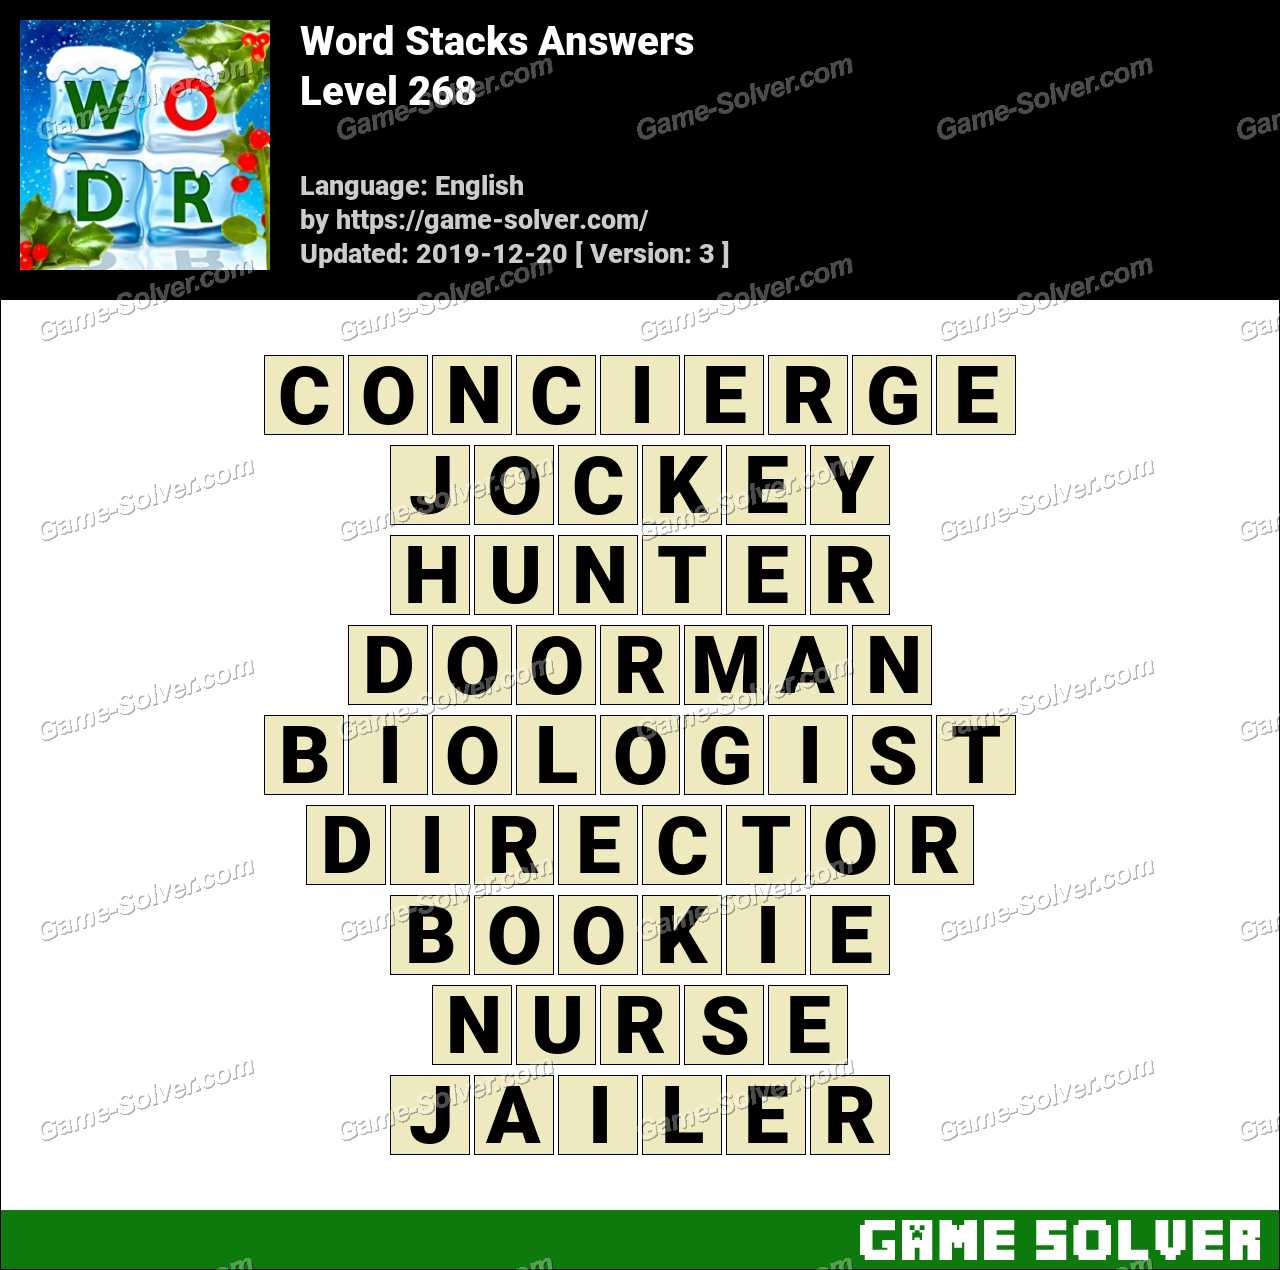 Word Stacks Level 268 Answers